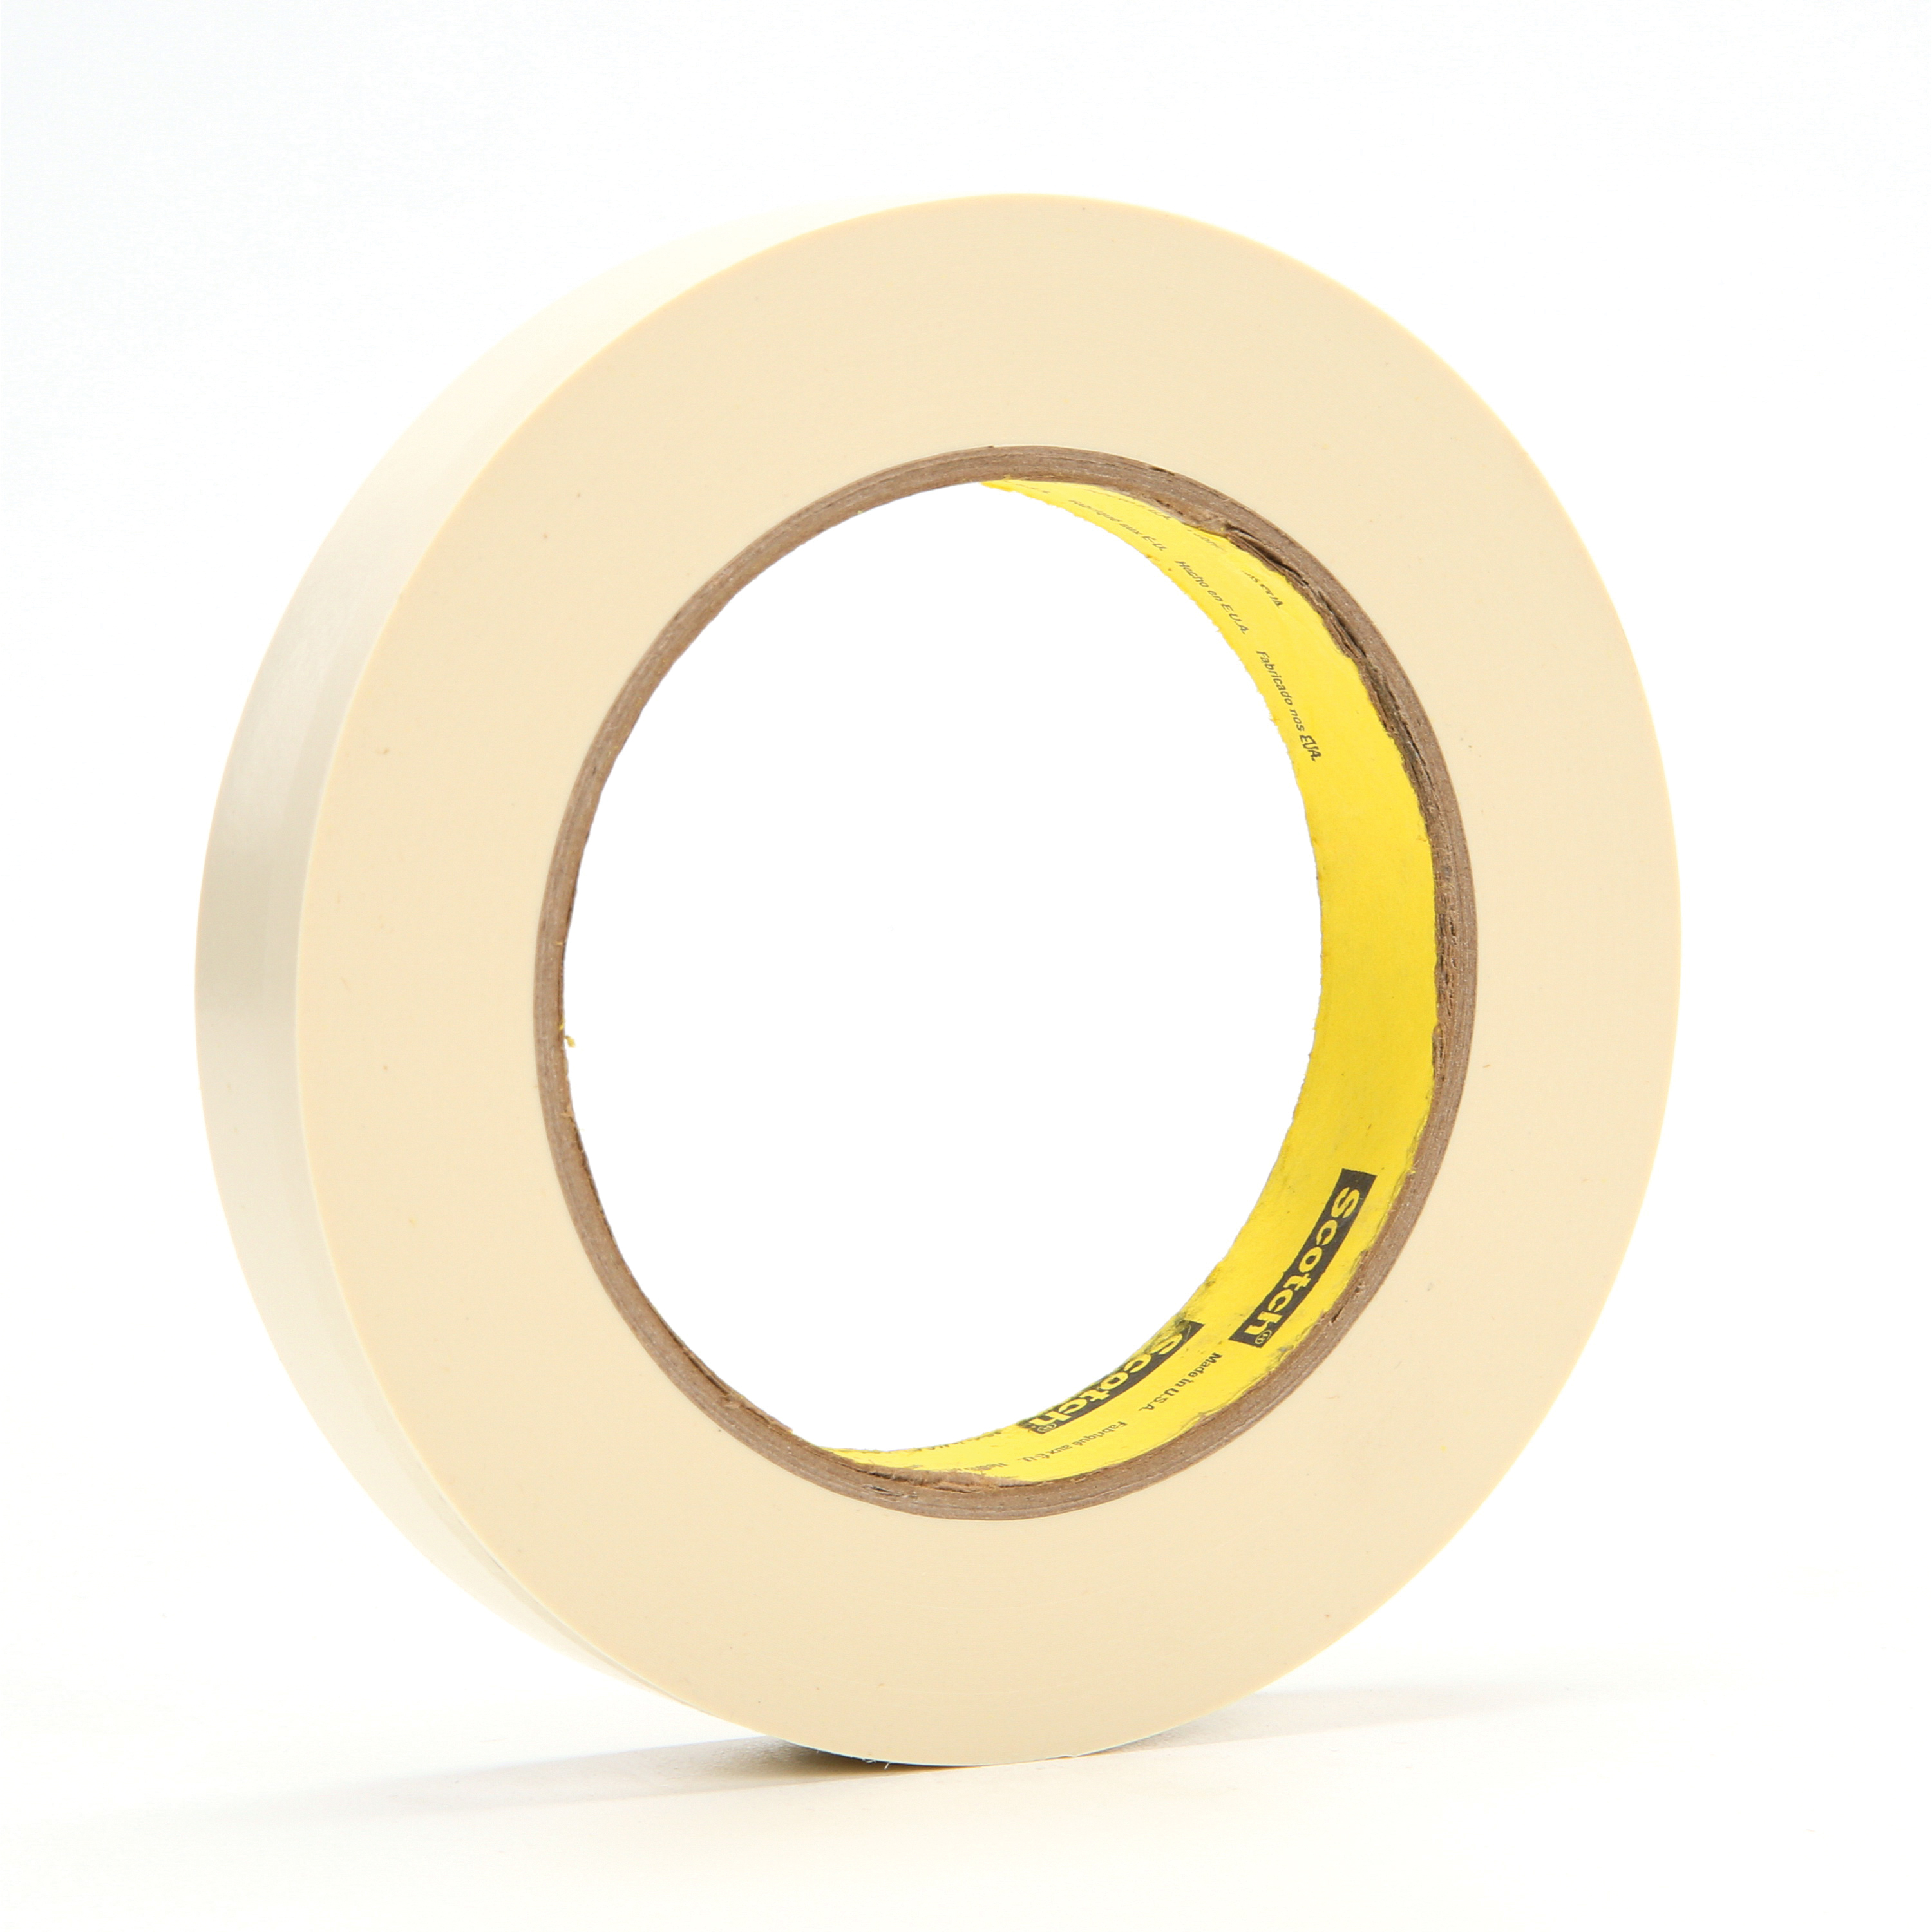 3M™ 021200-85615 470 Electroplating Tape, 36 yd L x 3/4 in W, 7.1 mil THK, Rubber Adhesive, Vinyl Backing